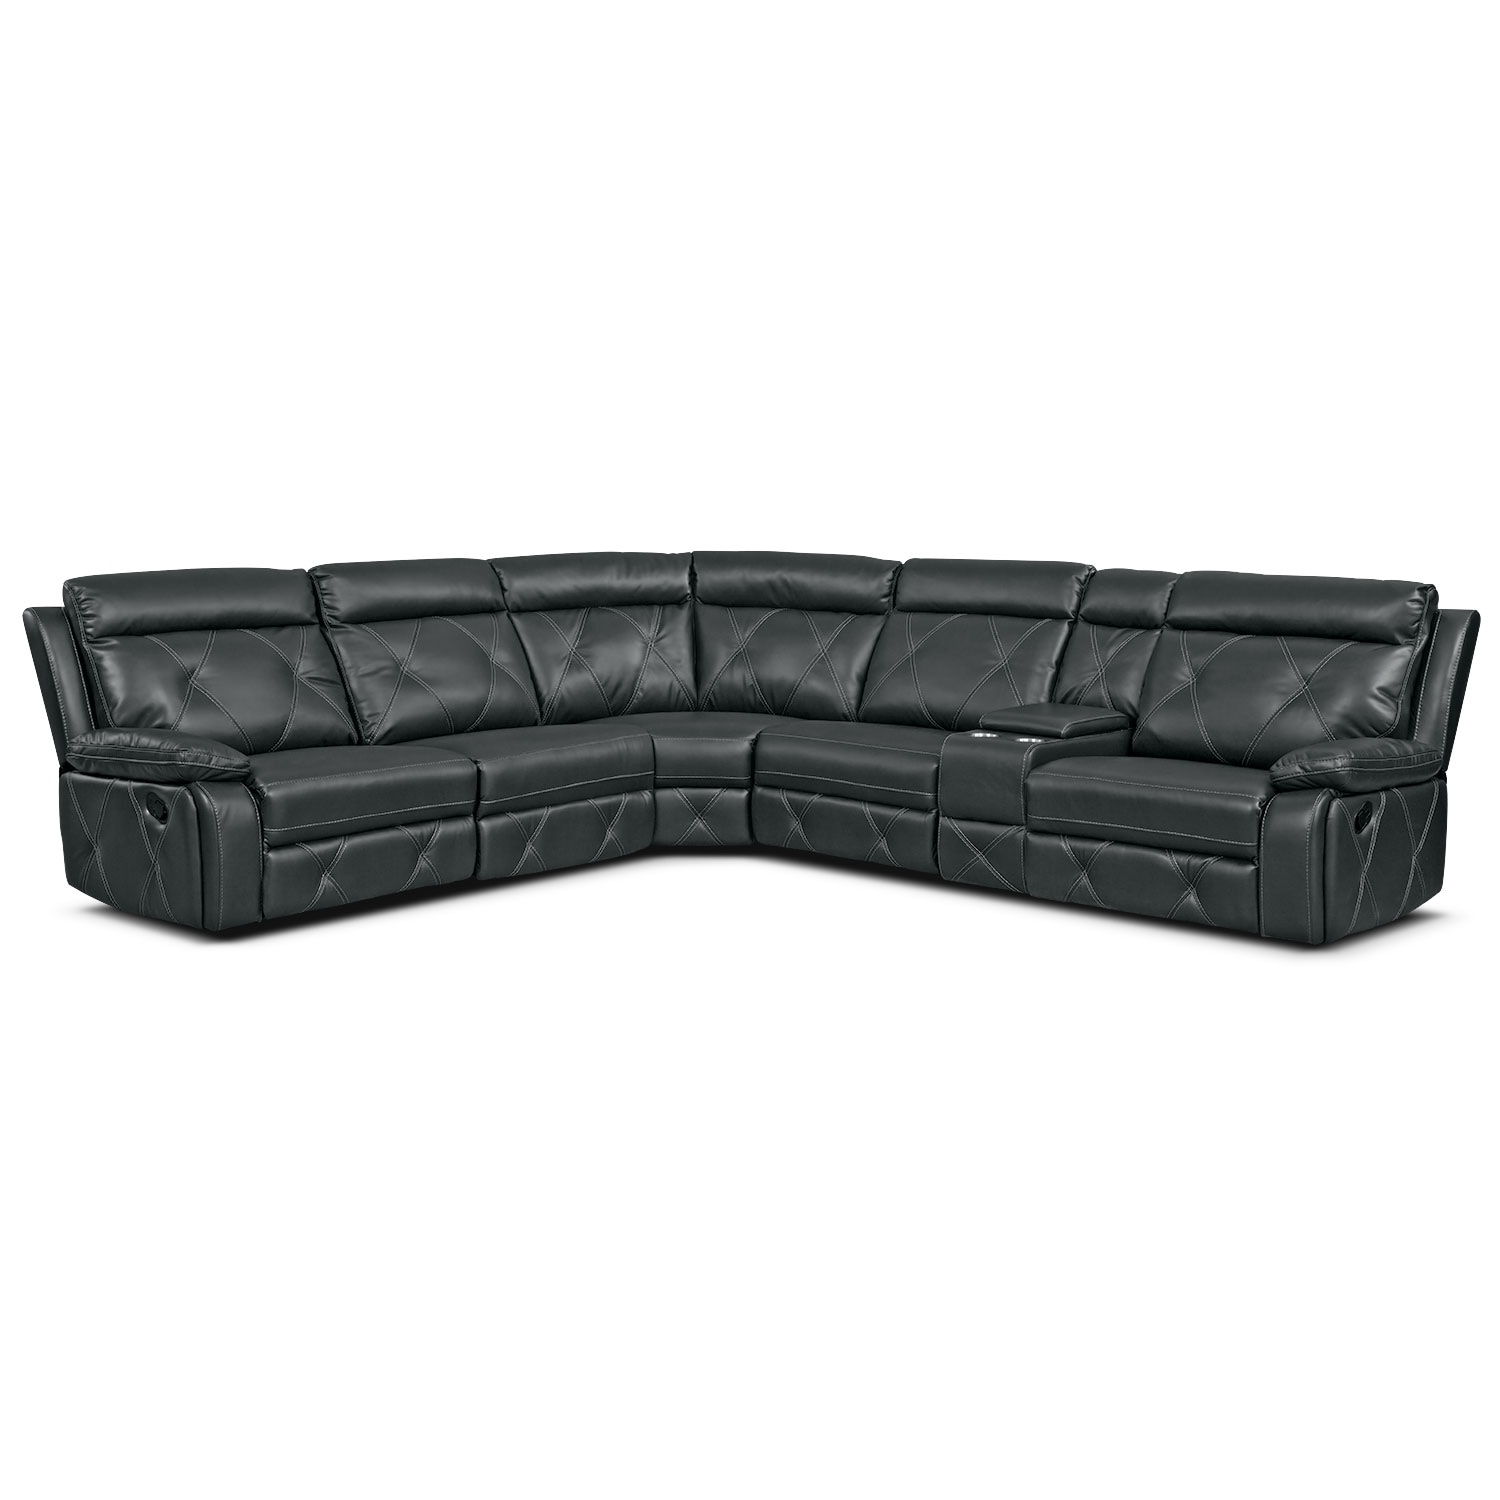 Dante 6 Piece Reclining Sectional With 3 Reclining Seats